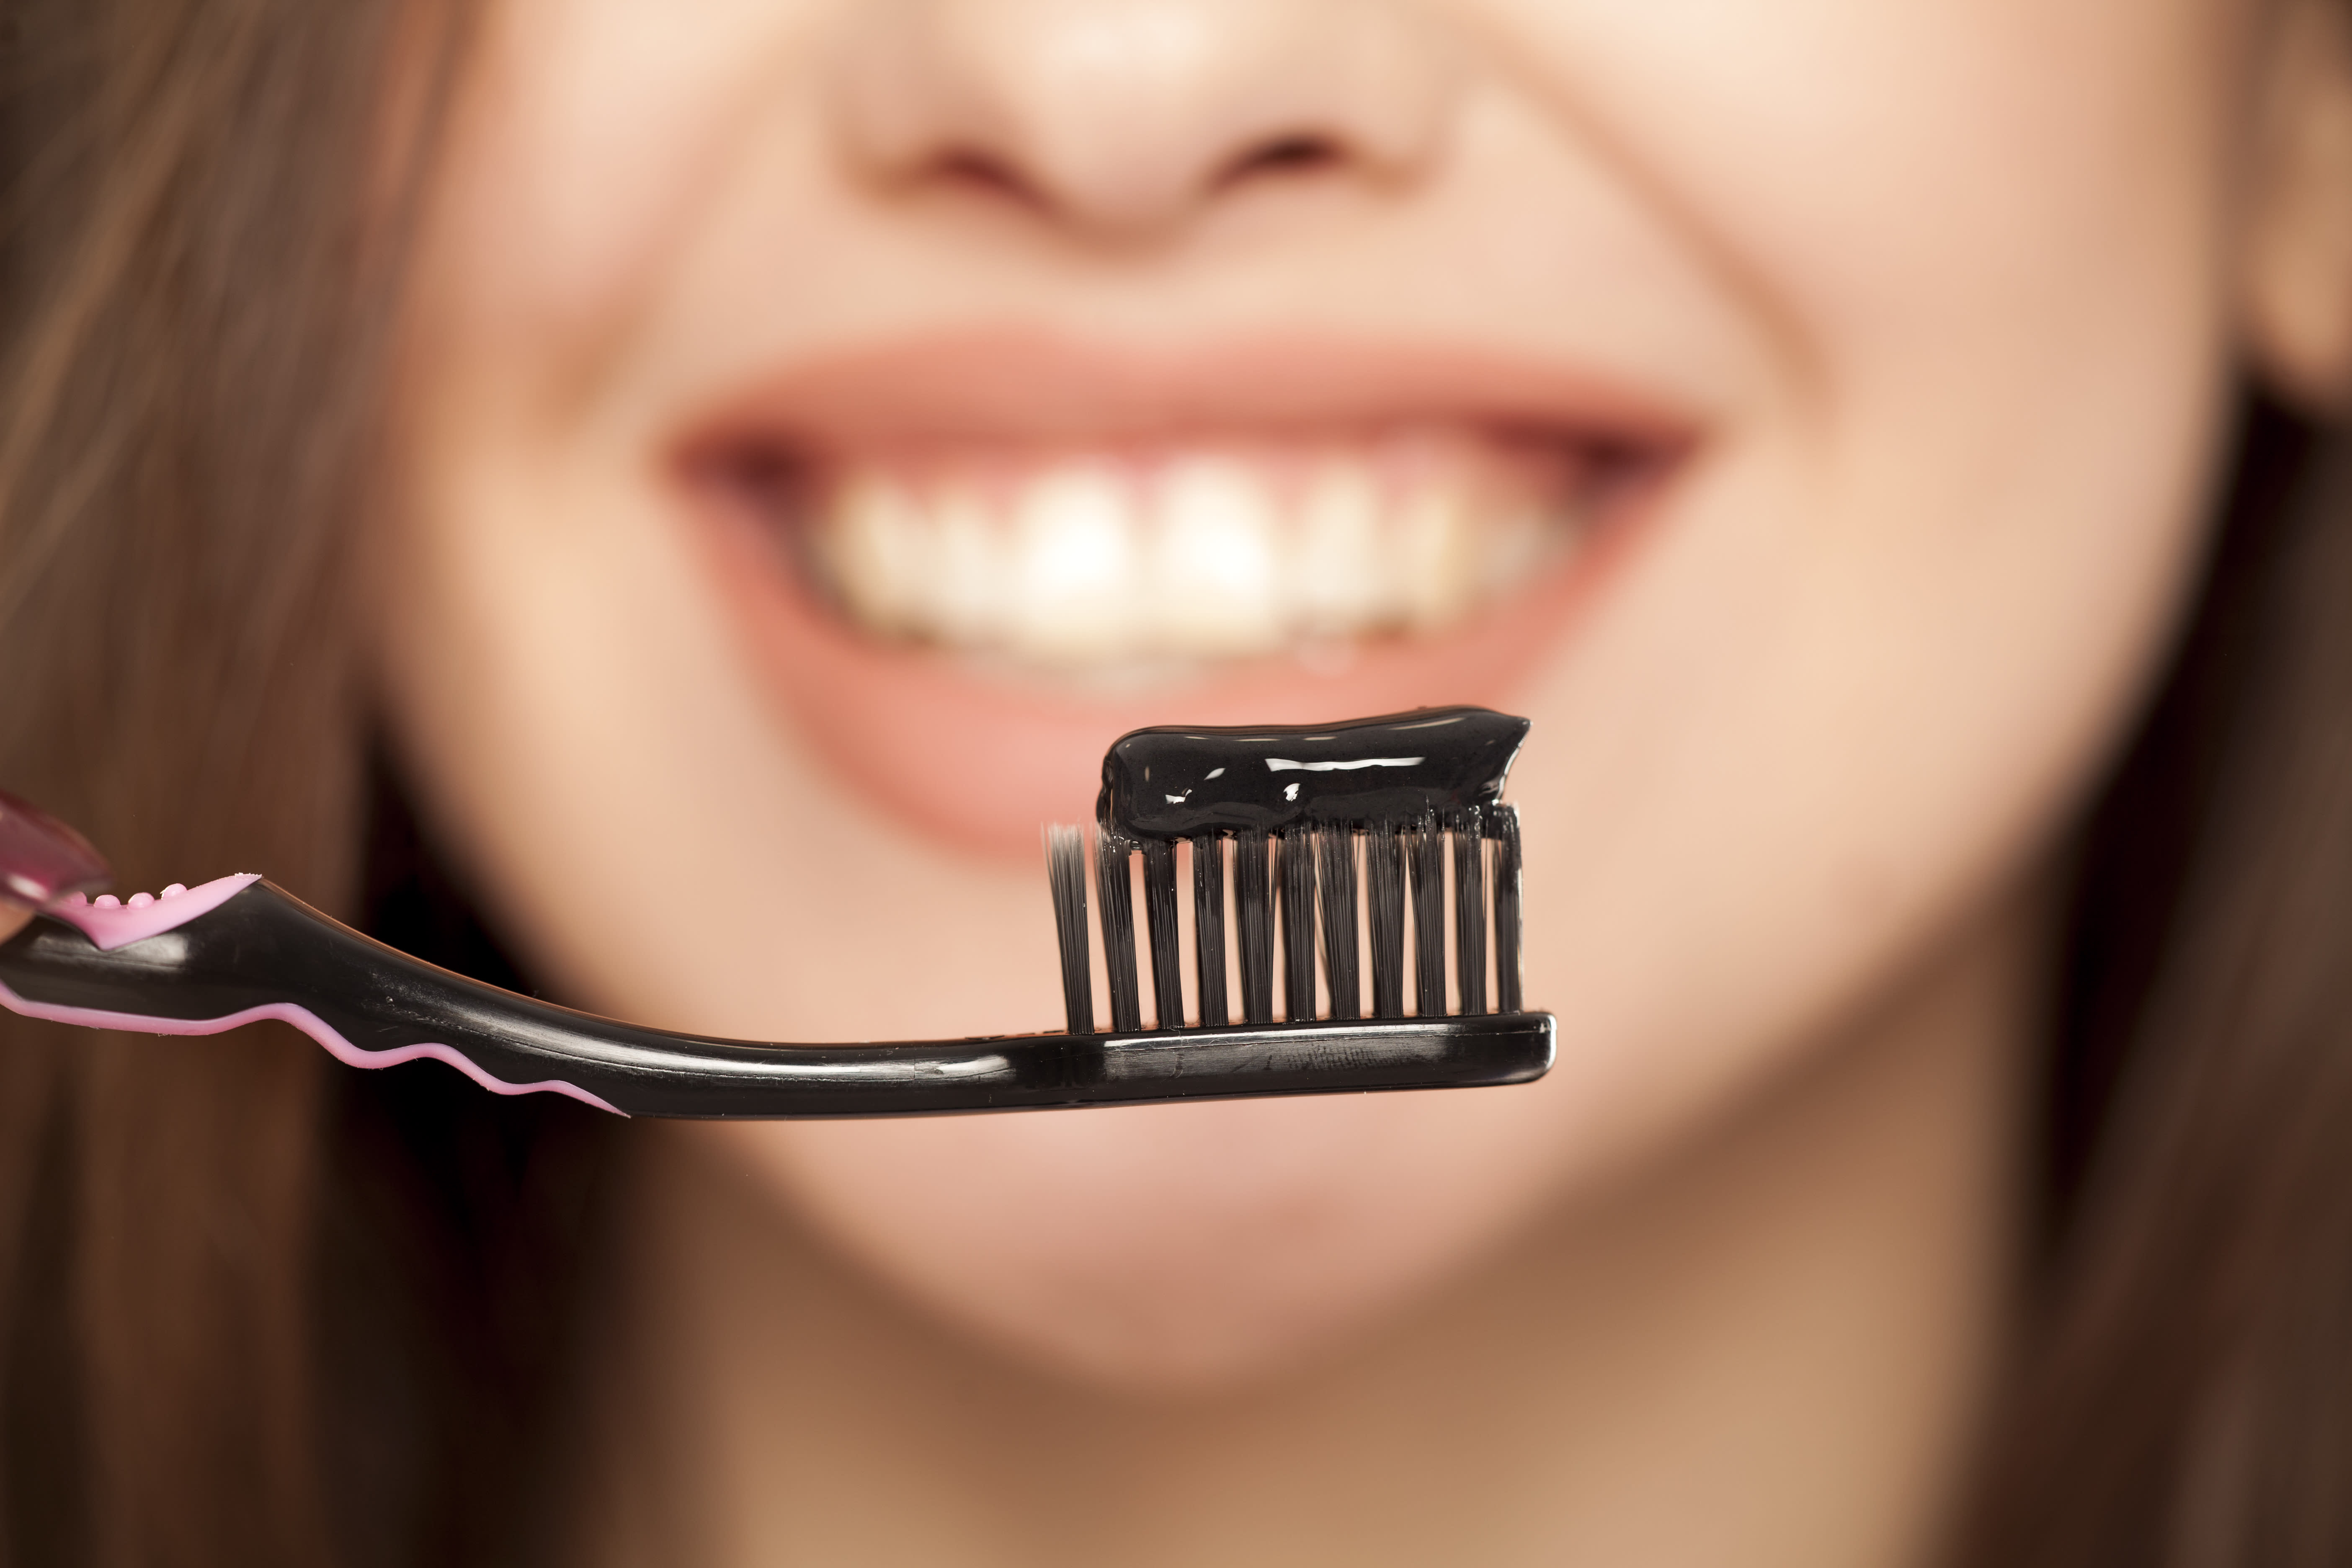 Thousands of people swear by activated charcoal toothpaste — here's what a dentist thinks